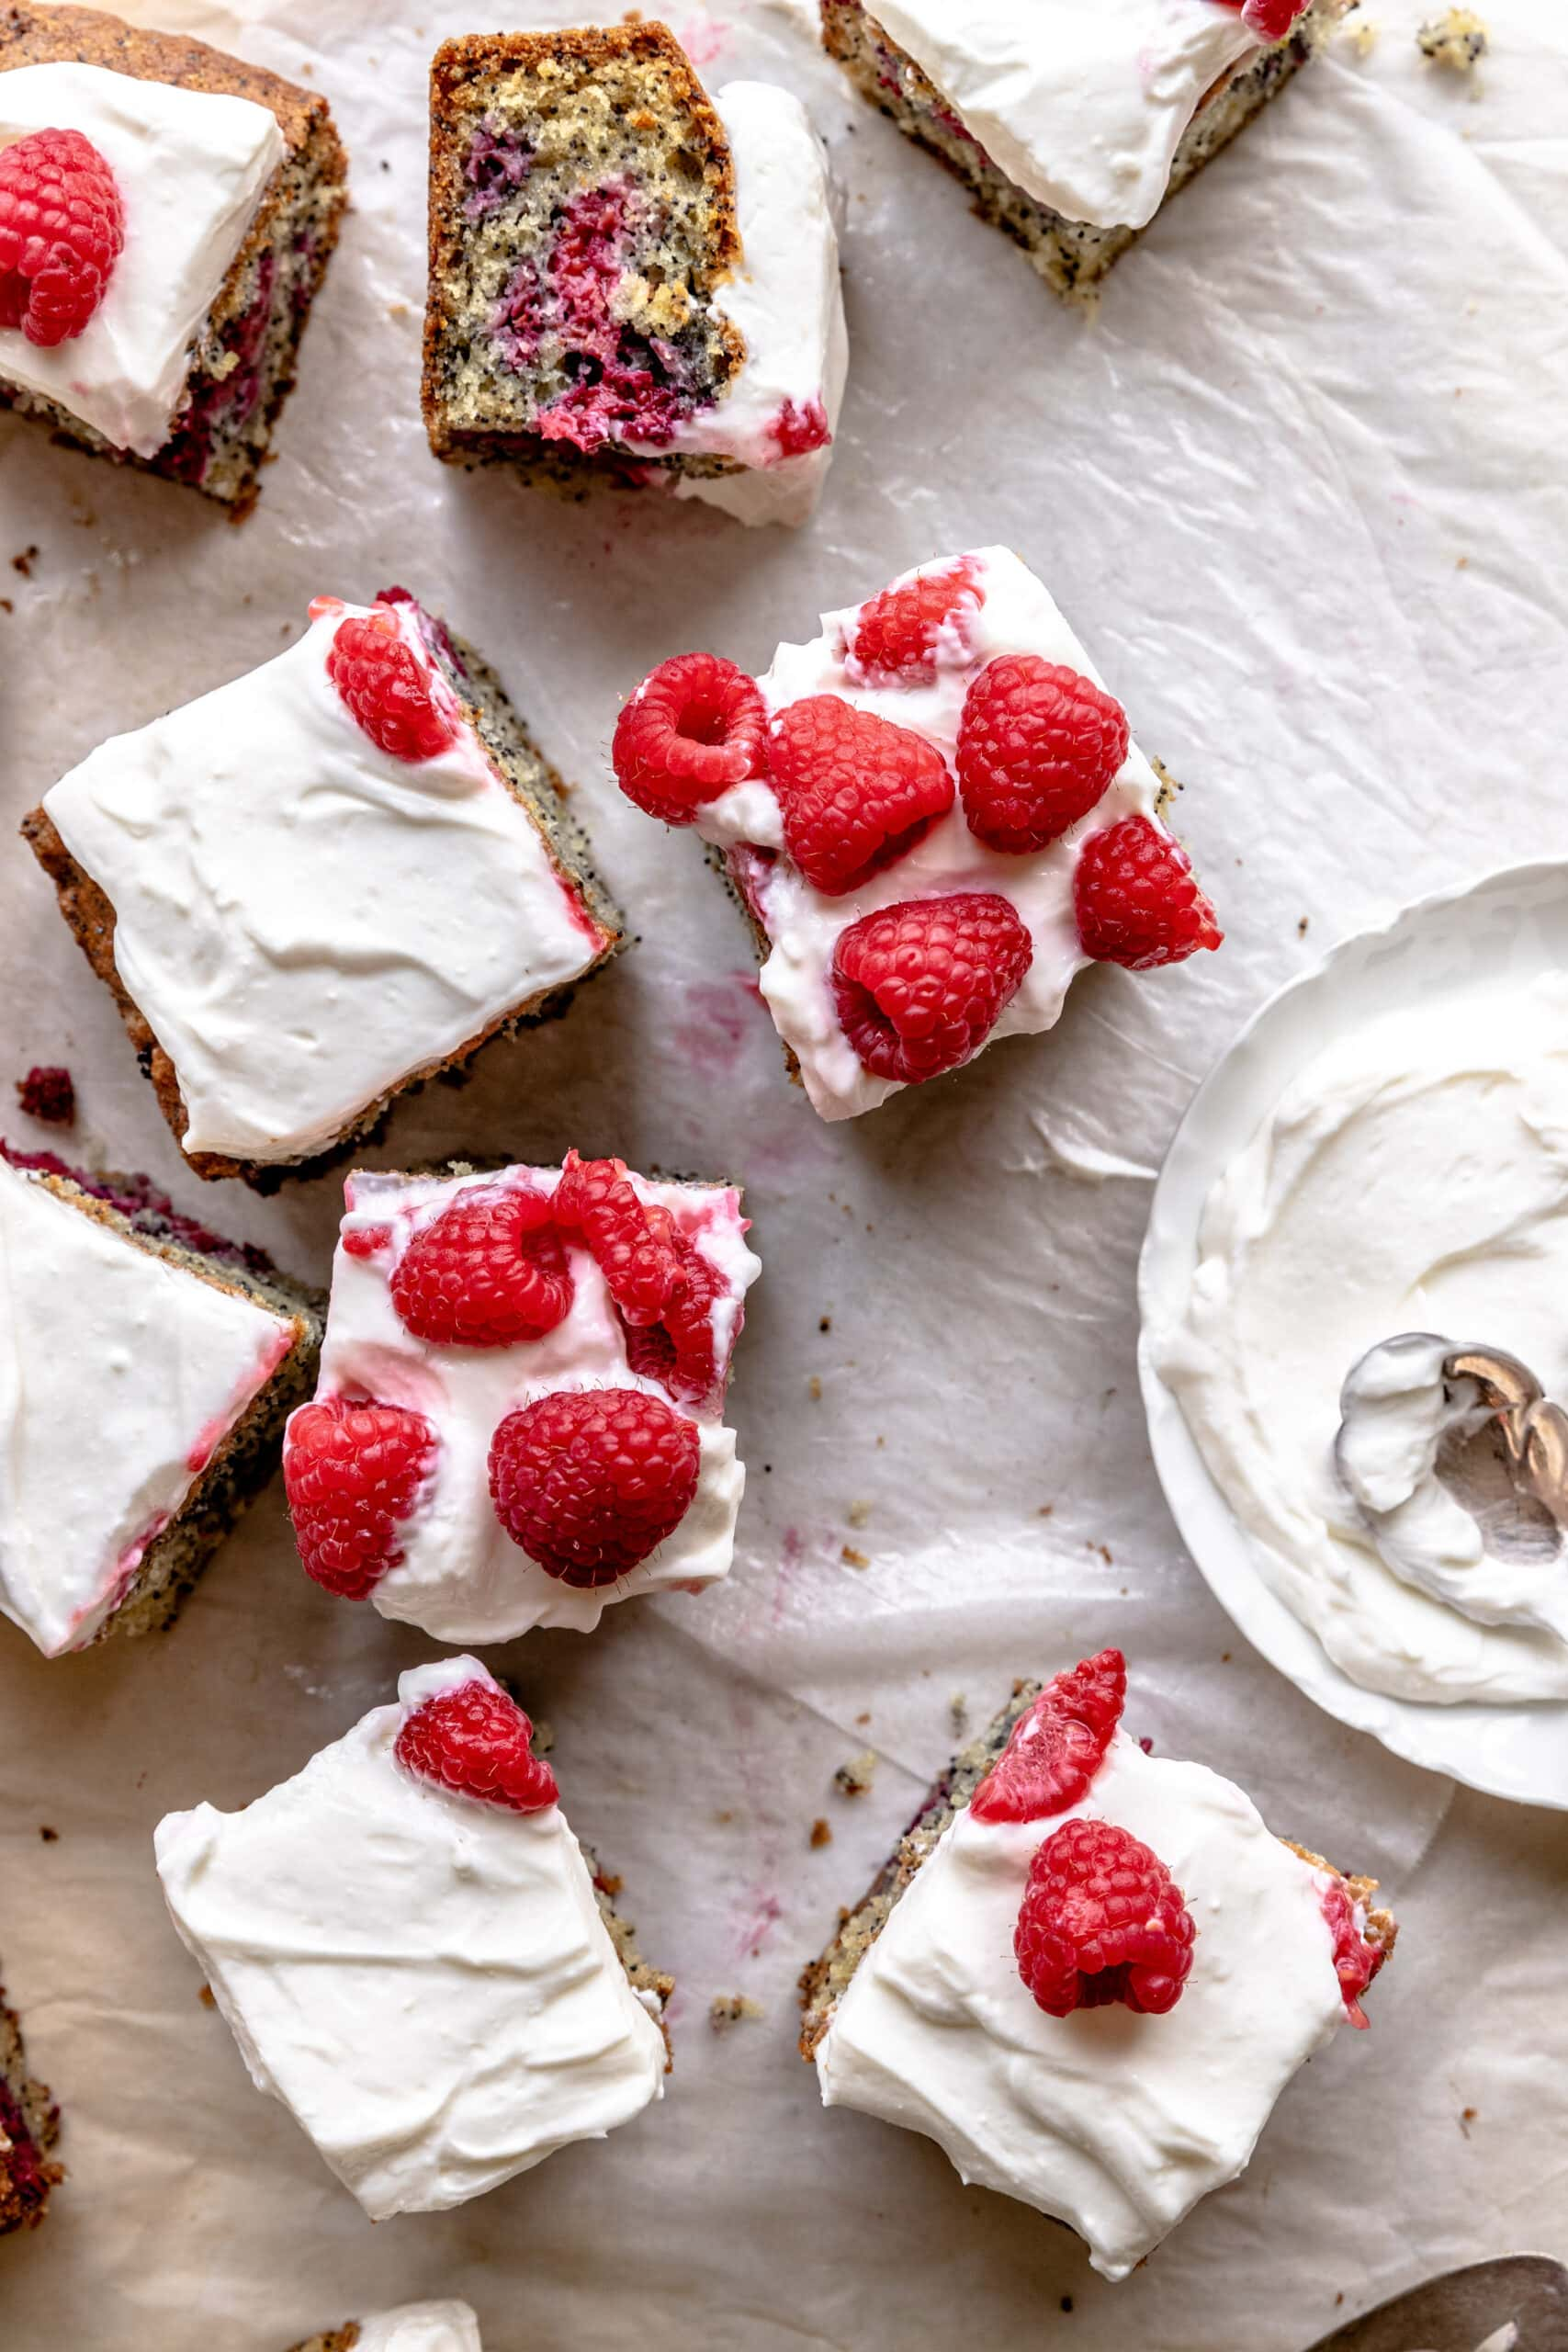 Overhead image of squares of the Raspberry Snack Cake on a few layers of parchment and topped with raspberries.